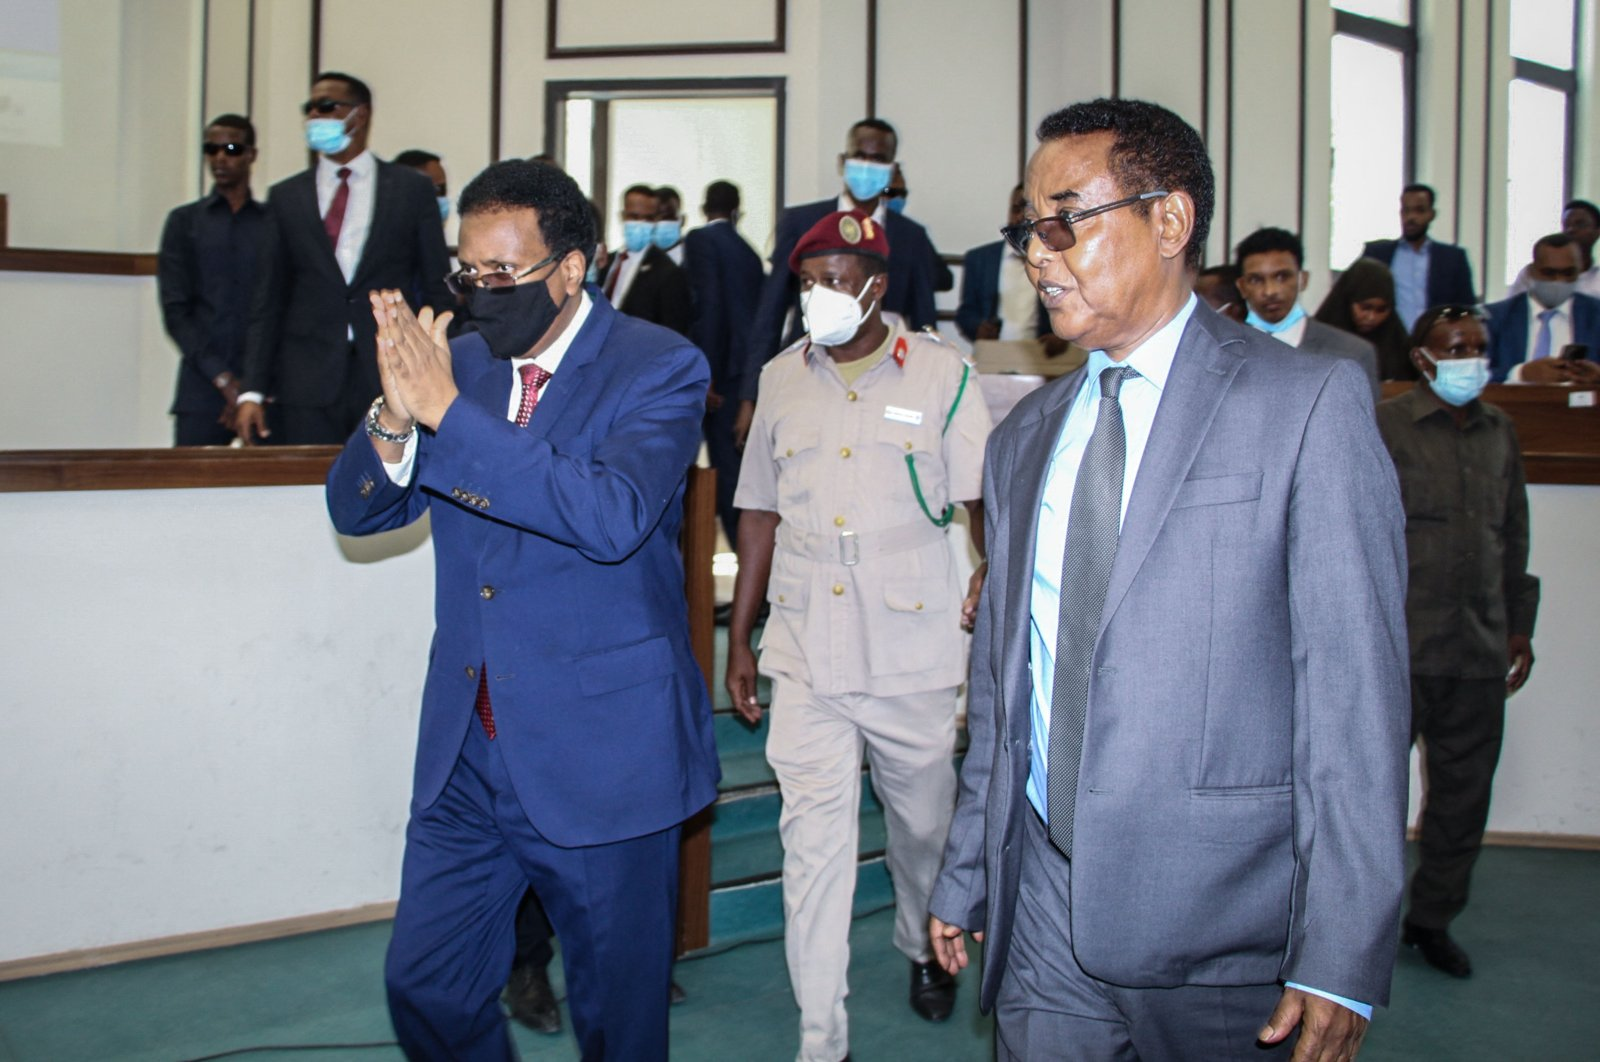 Somalia's President Mohamed Abdullahi Mohamed (L), commonly known by his nickname of Farmajo, attends the special assembly for abandoning the two-year extension of his presidential term and requesting the immediate election to ease the recent political tension at Villa Hargeisa in Mogadishu, Somalia, May 1, 2021. (AFP Photo)